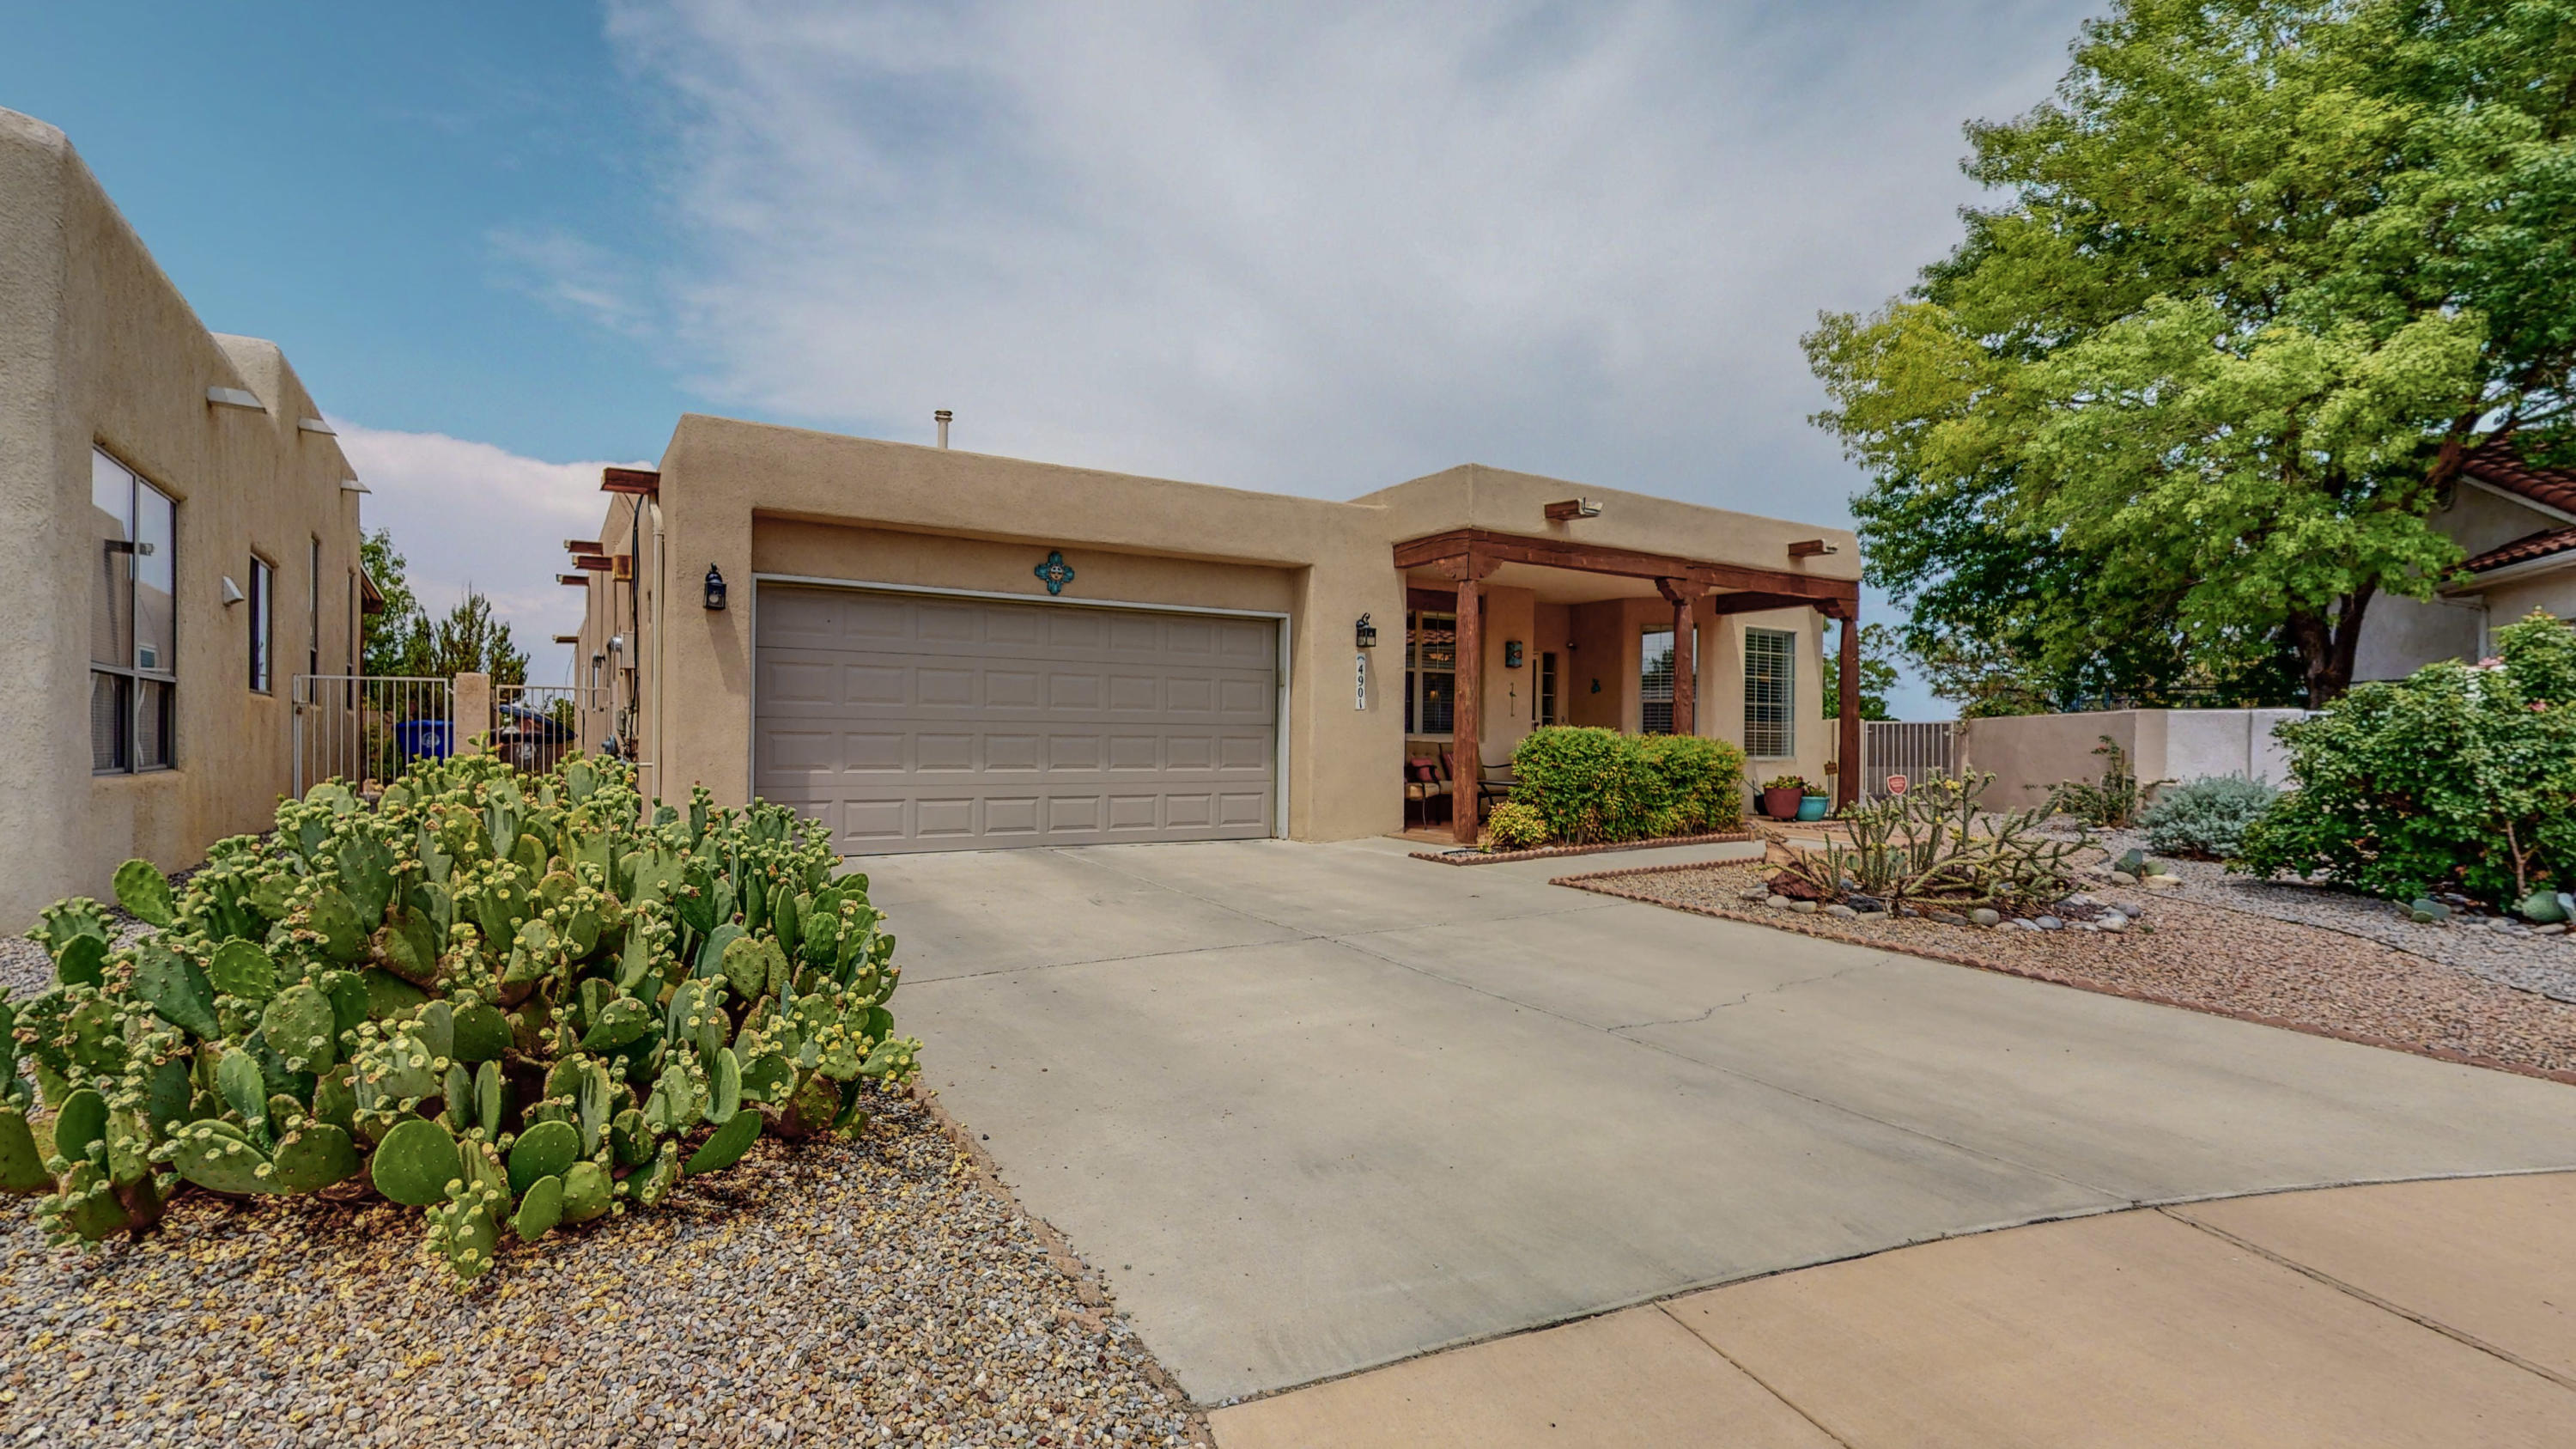 A must see!  Beautiful 1 story home in sought after golf course community.  Meticulously maintained.  Newer updated appliances and flooring.  2 year old TPO roof and stucco!  3 car tandem garage, Mountain views.